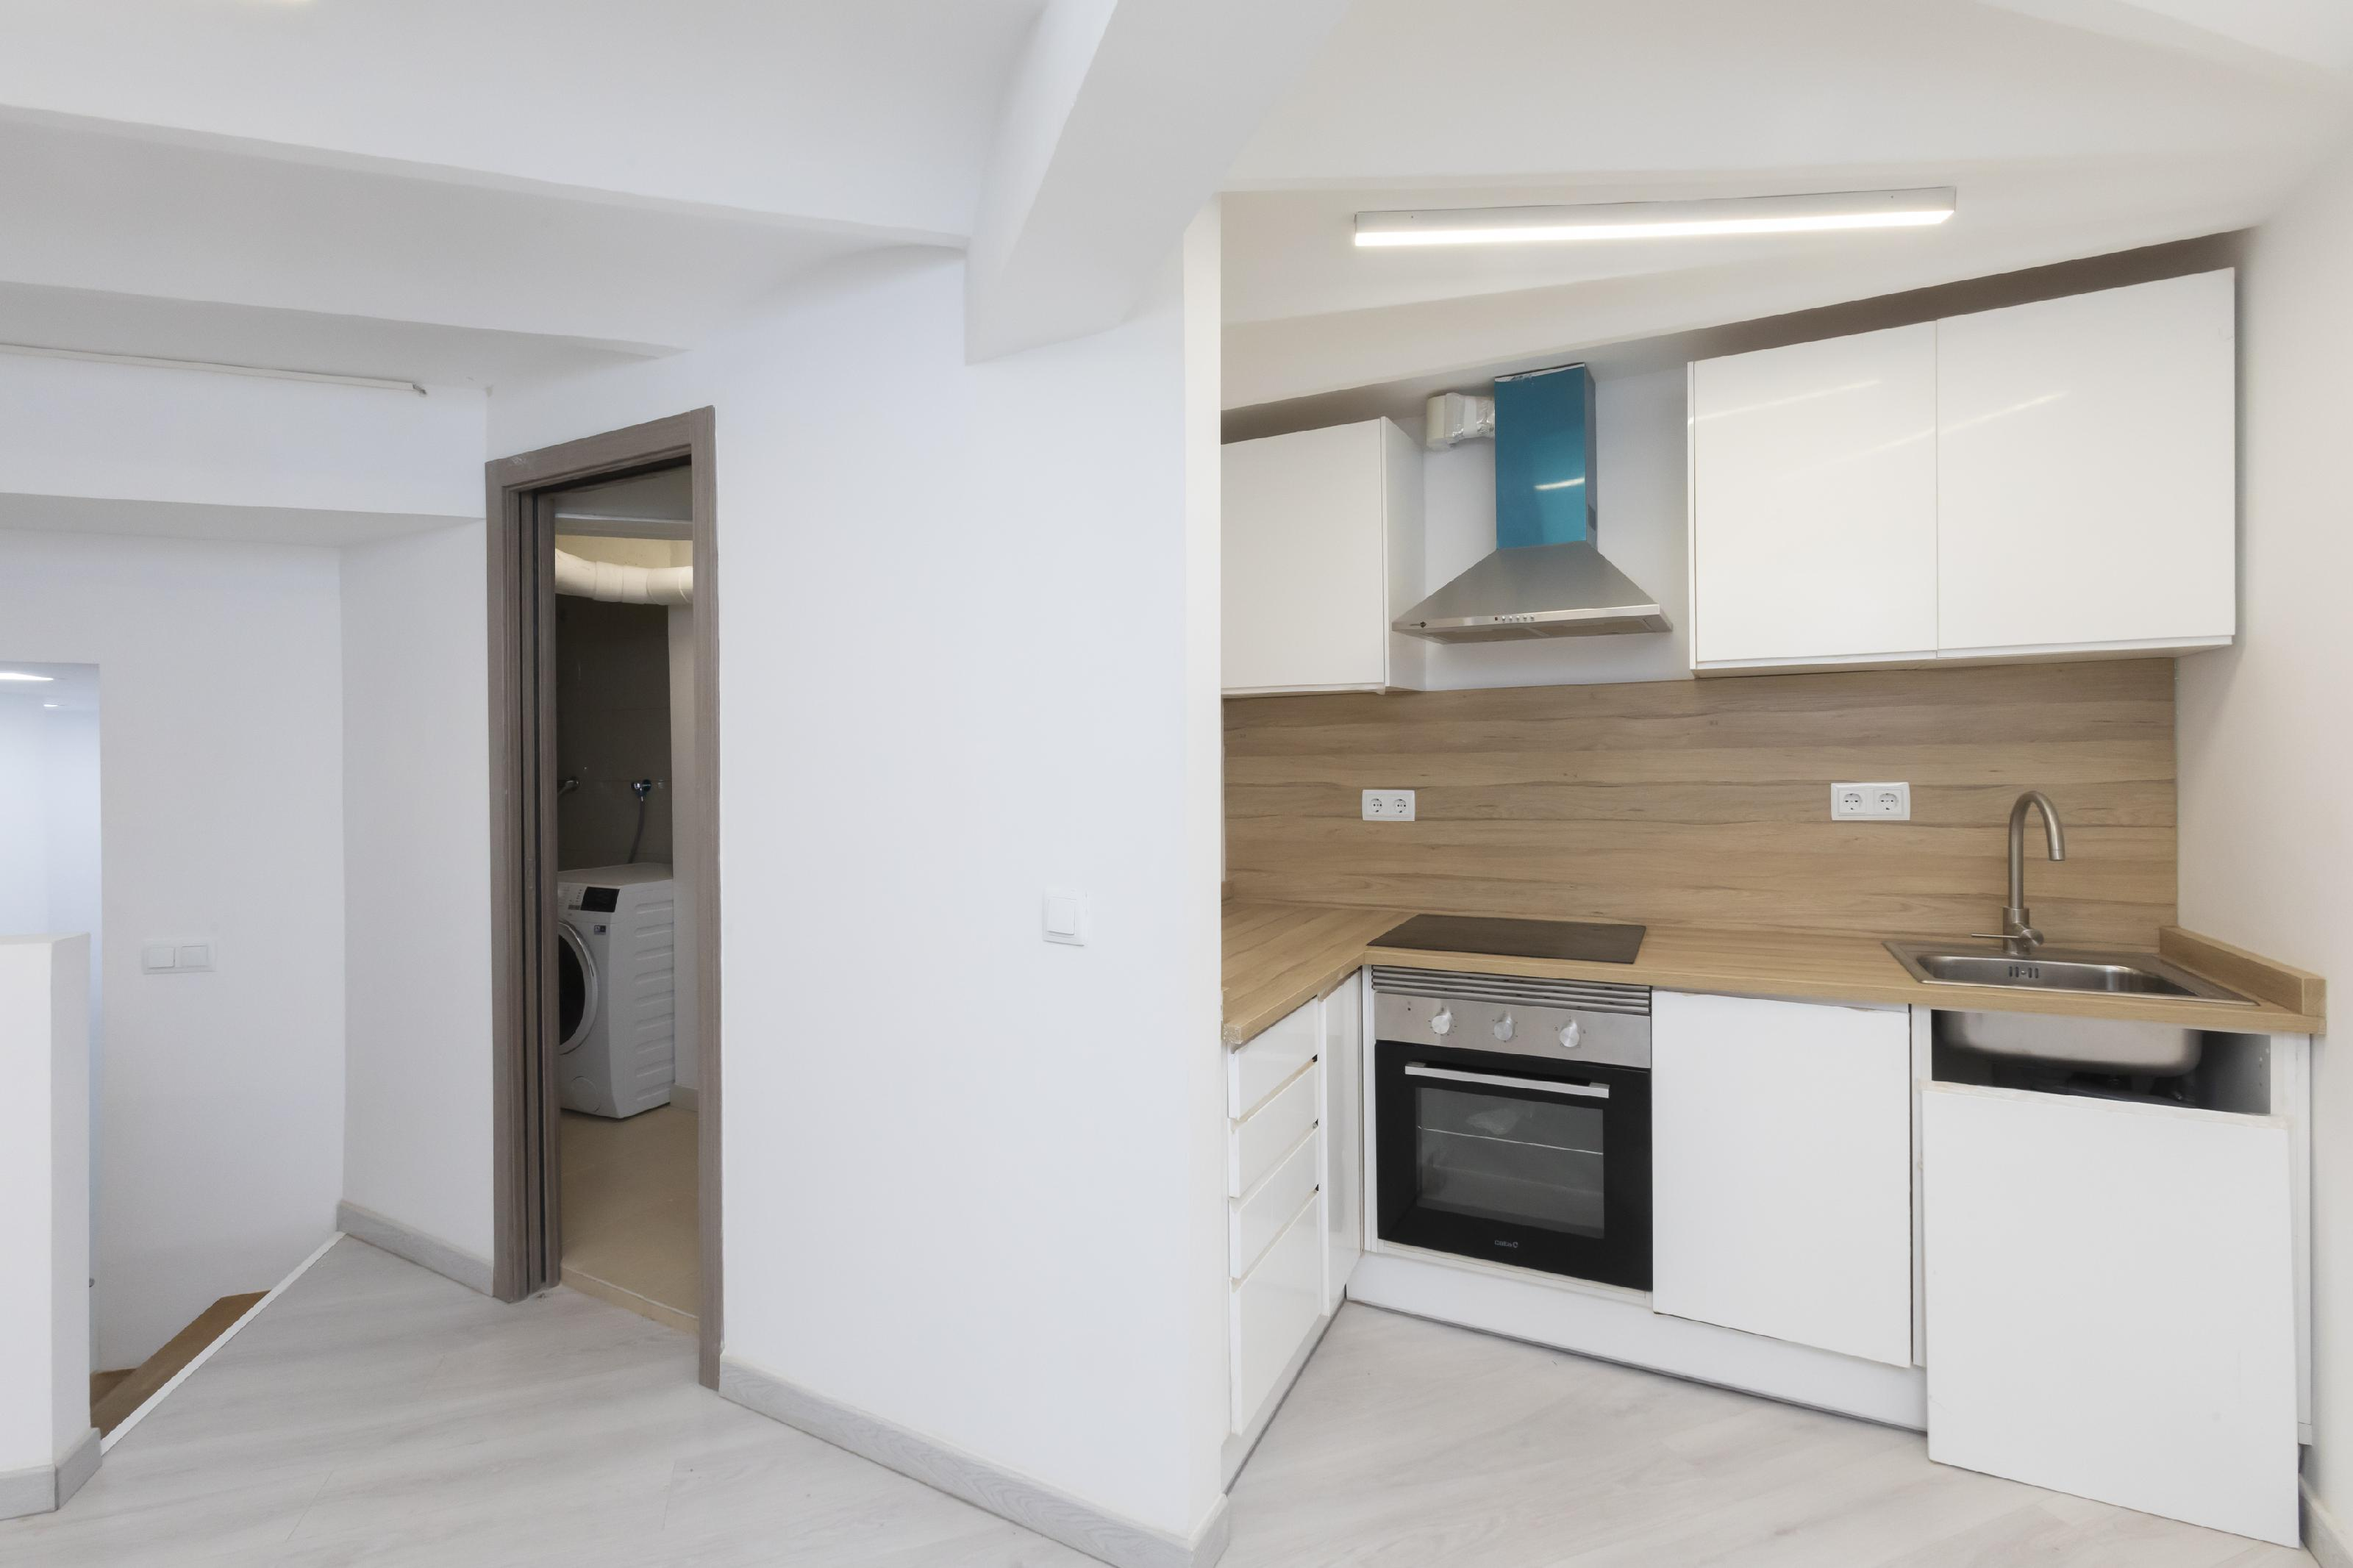 242978 Flat for sale in Gràcia, Camp Grassot and Gràcia Nova 17